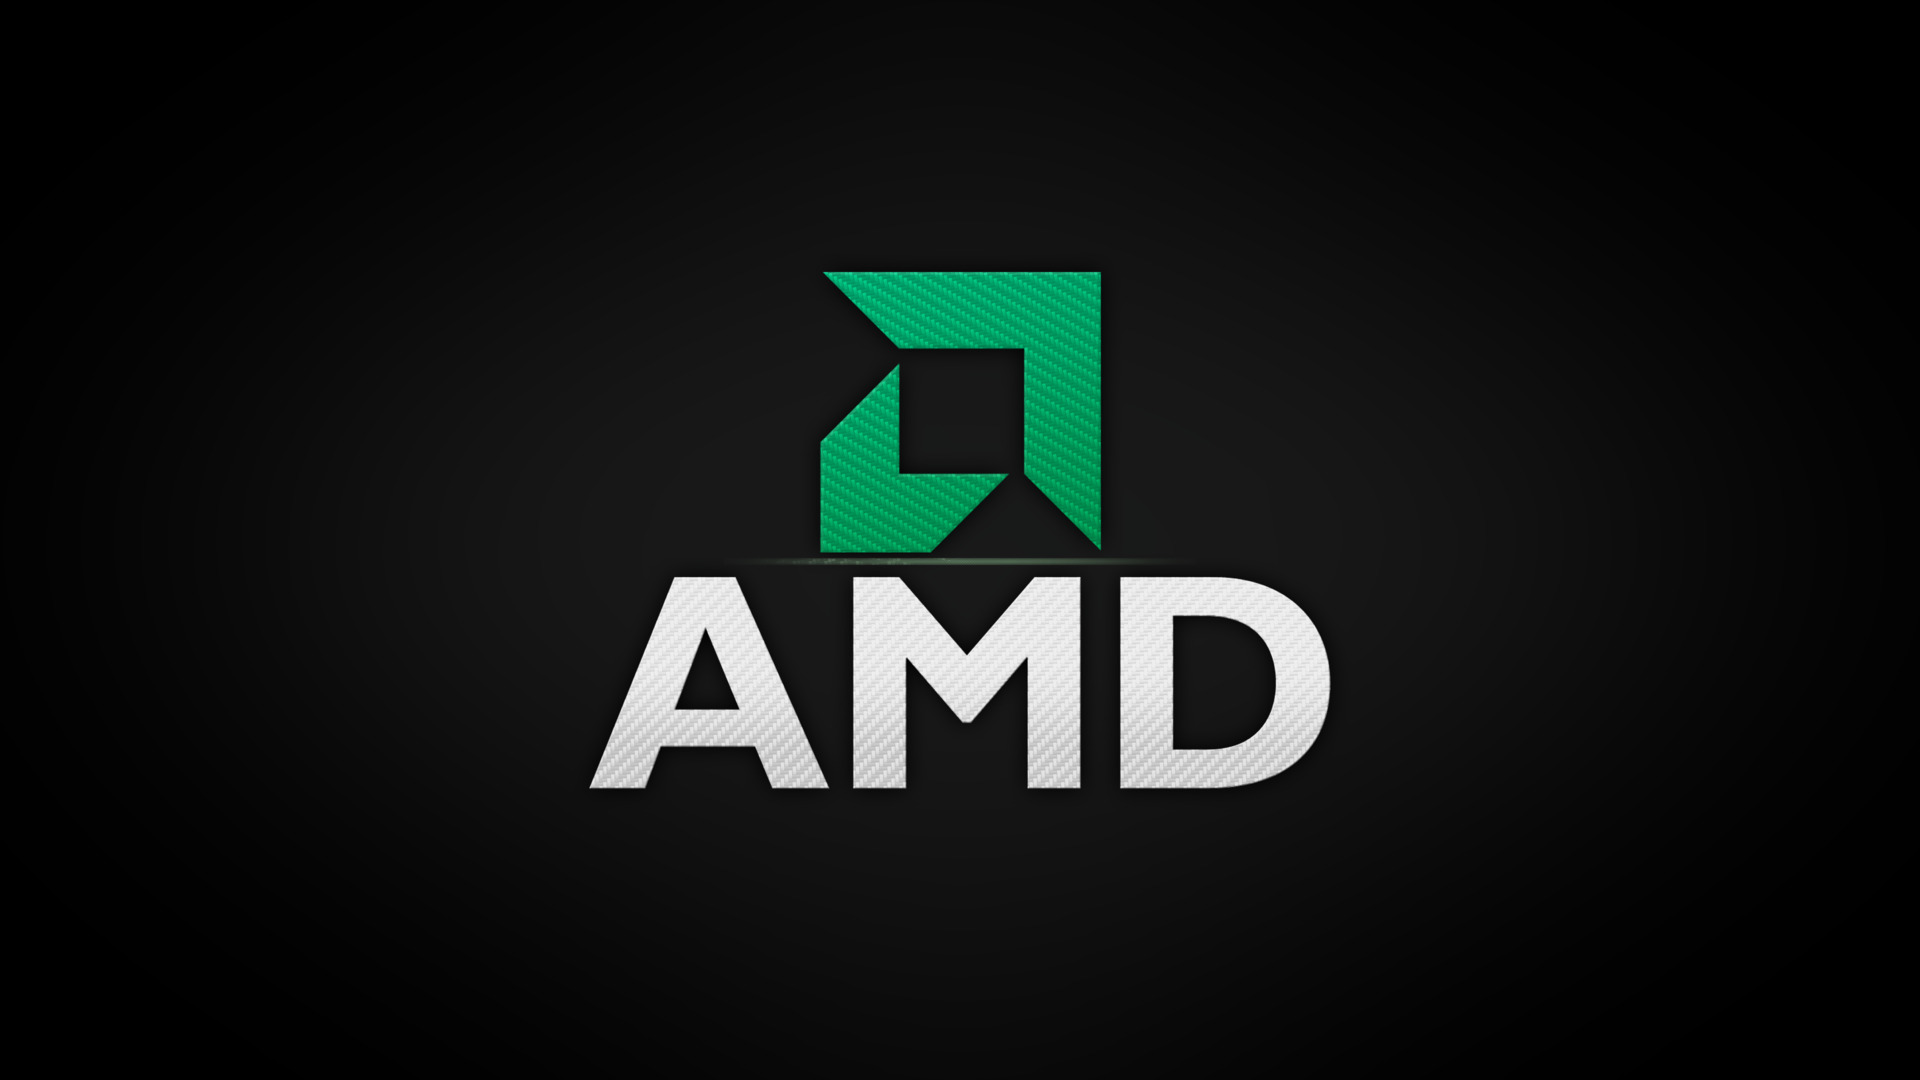 1920x1080 amd brand logo laptop full hd 1080p hd 4k wallpapers